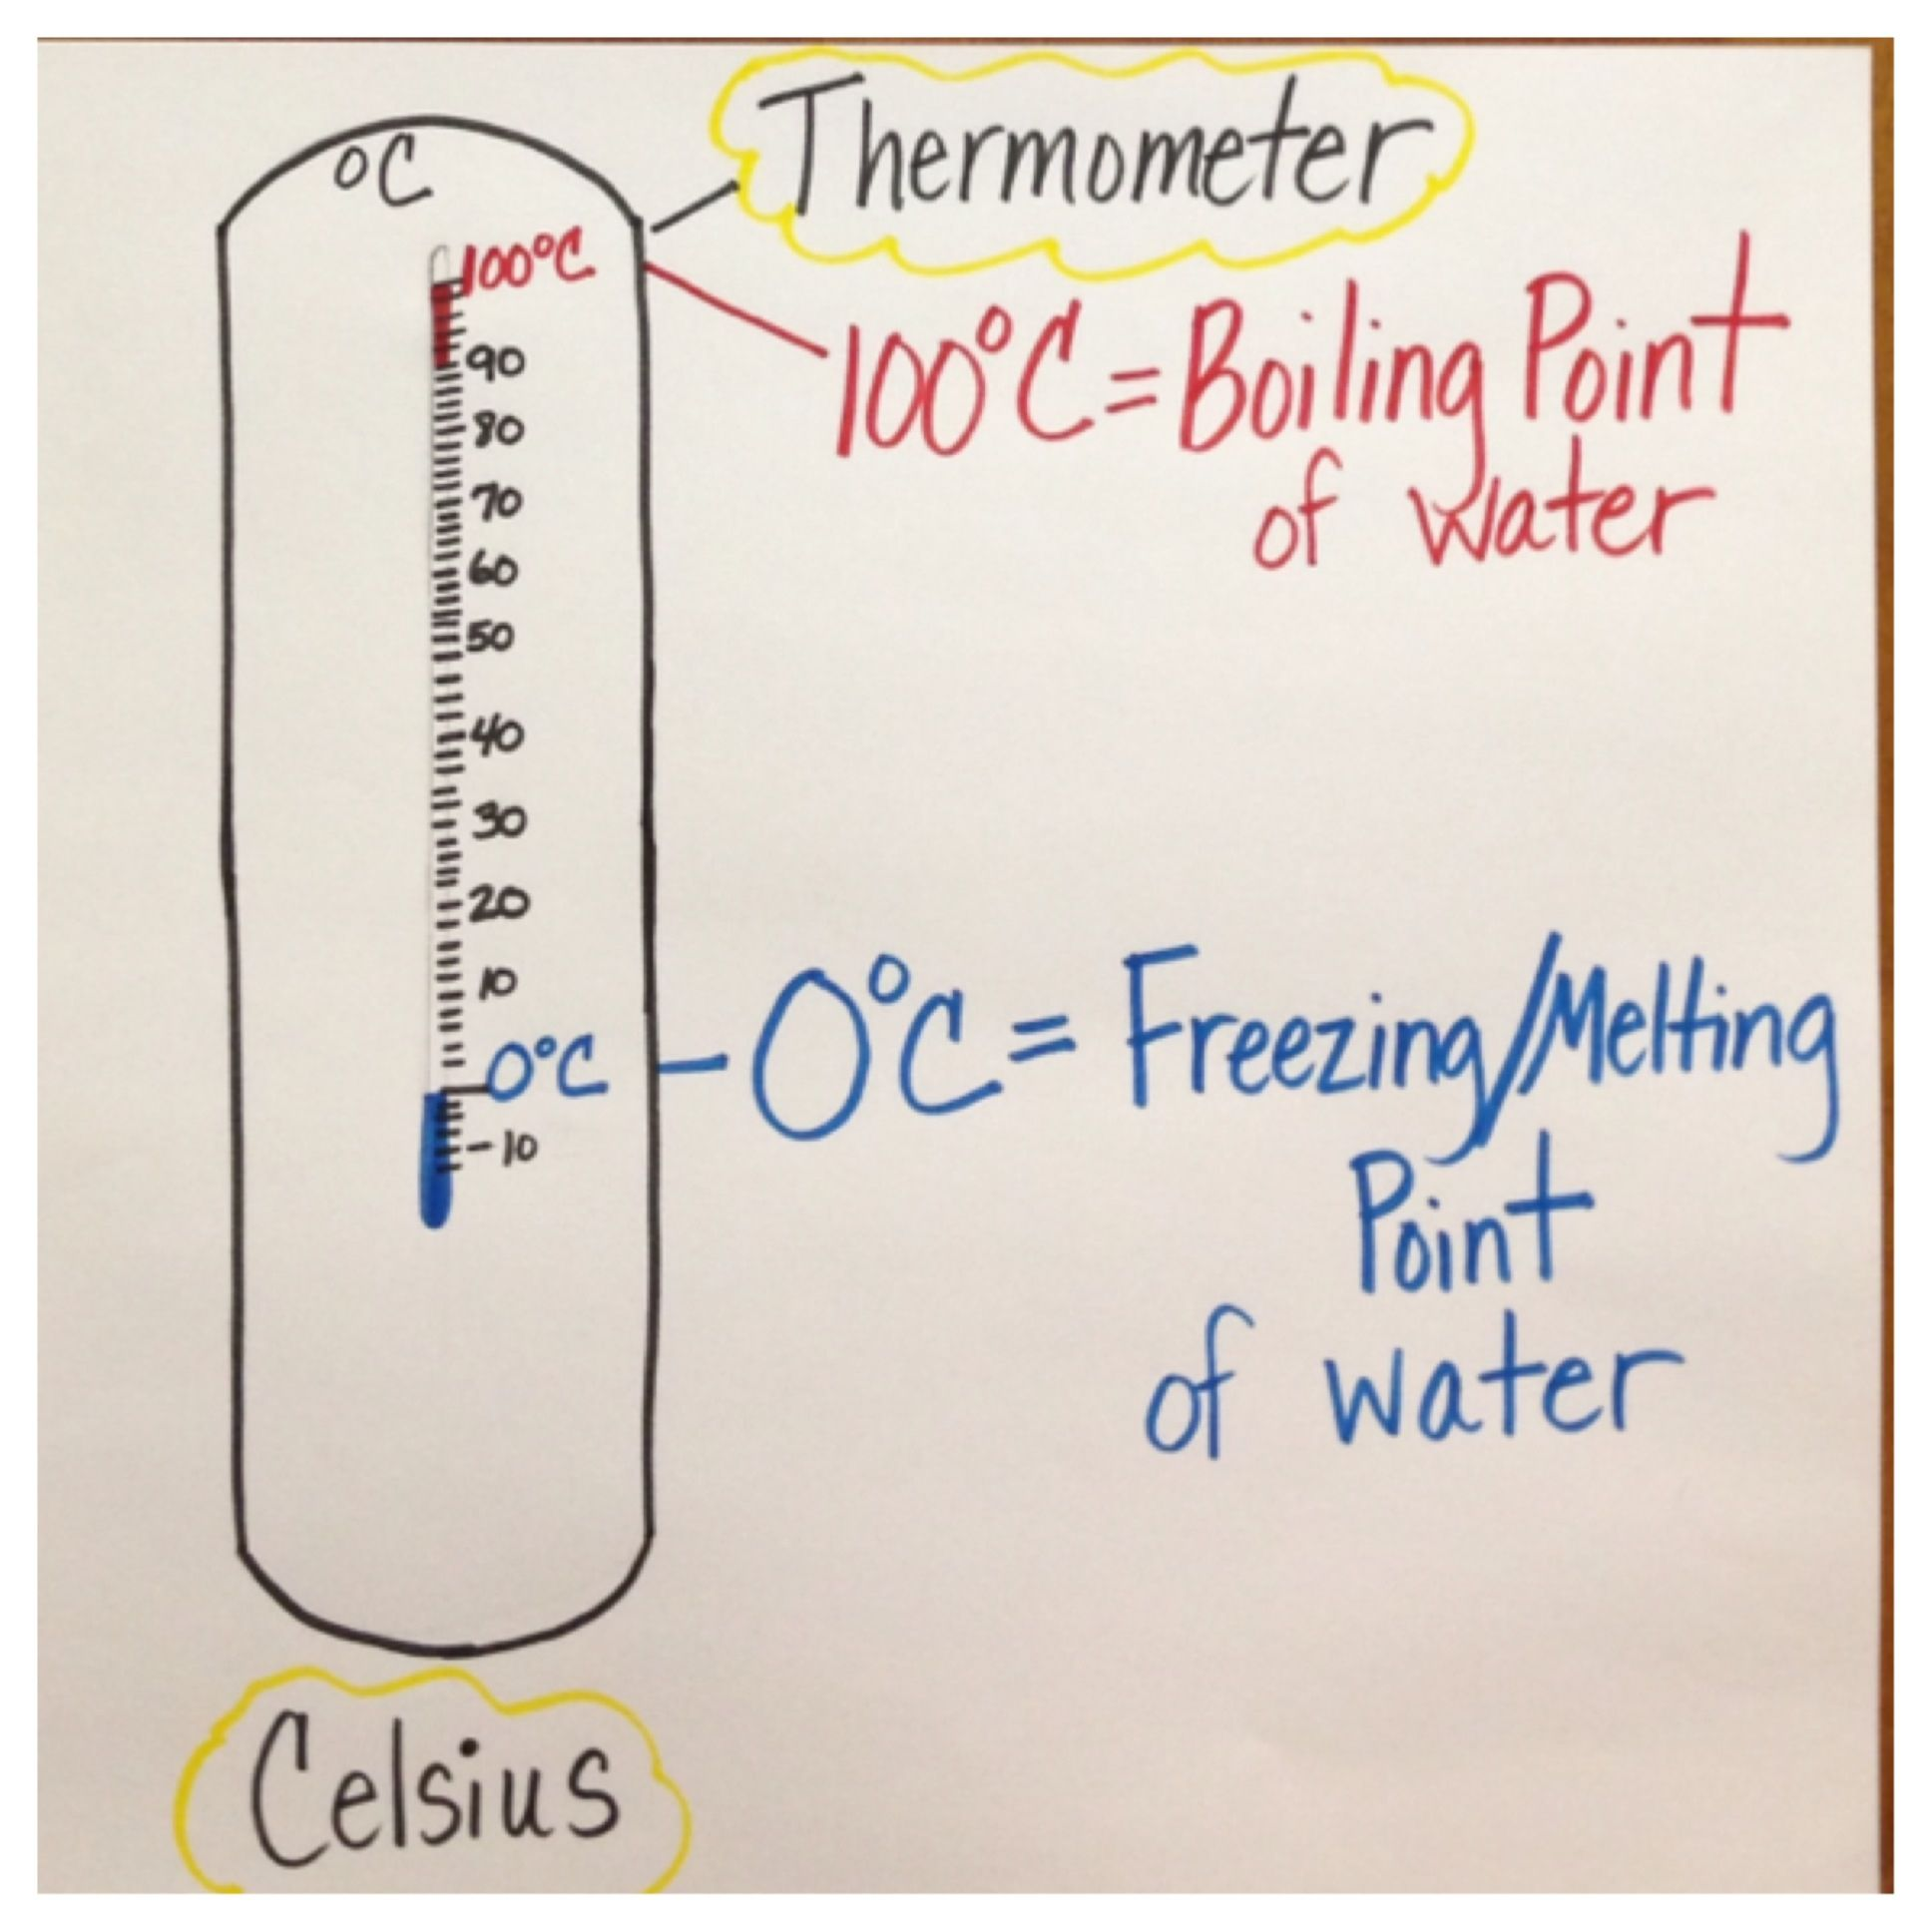 Boiling Point Freezing Melting Point Anchorchart